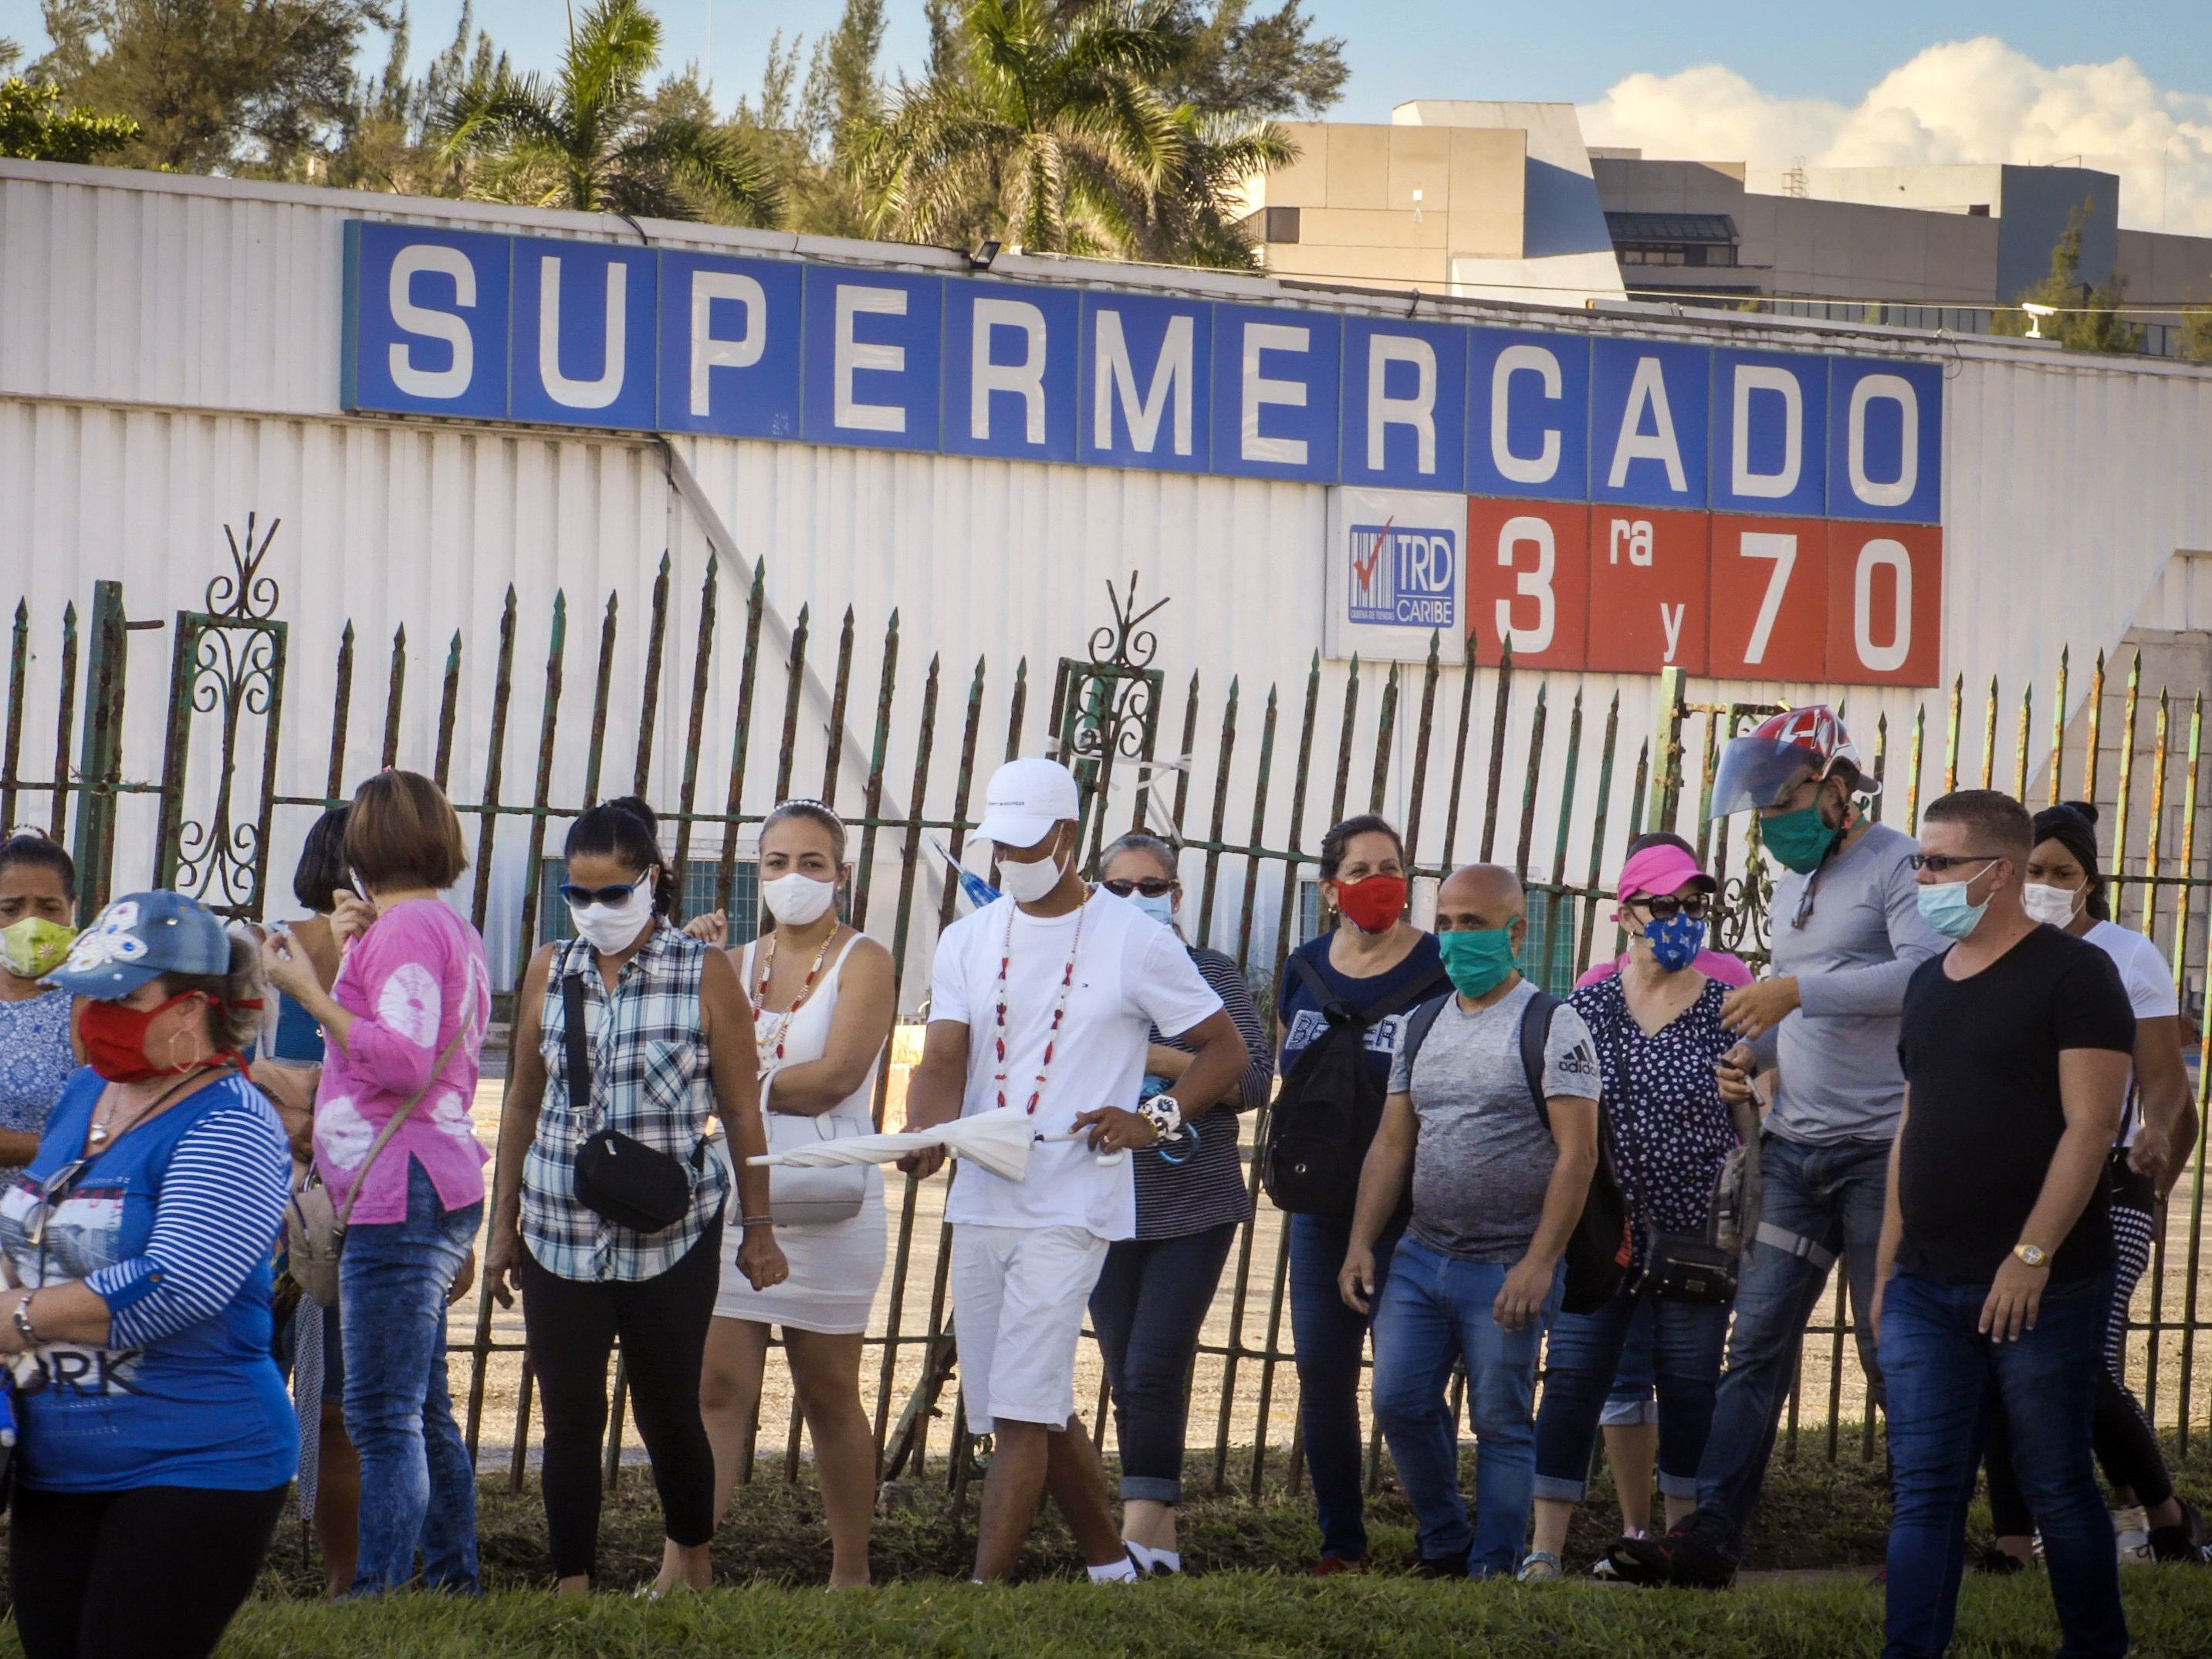 Pandemic May Be The Push To Open Cuba's State-Controlled Economy